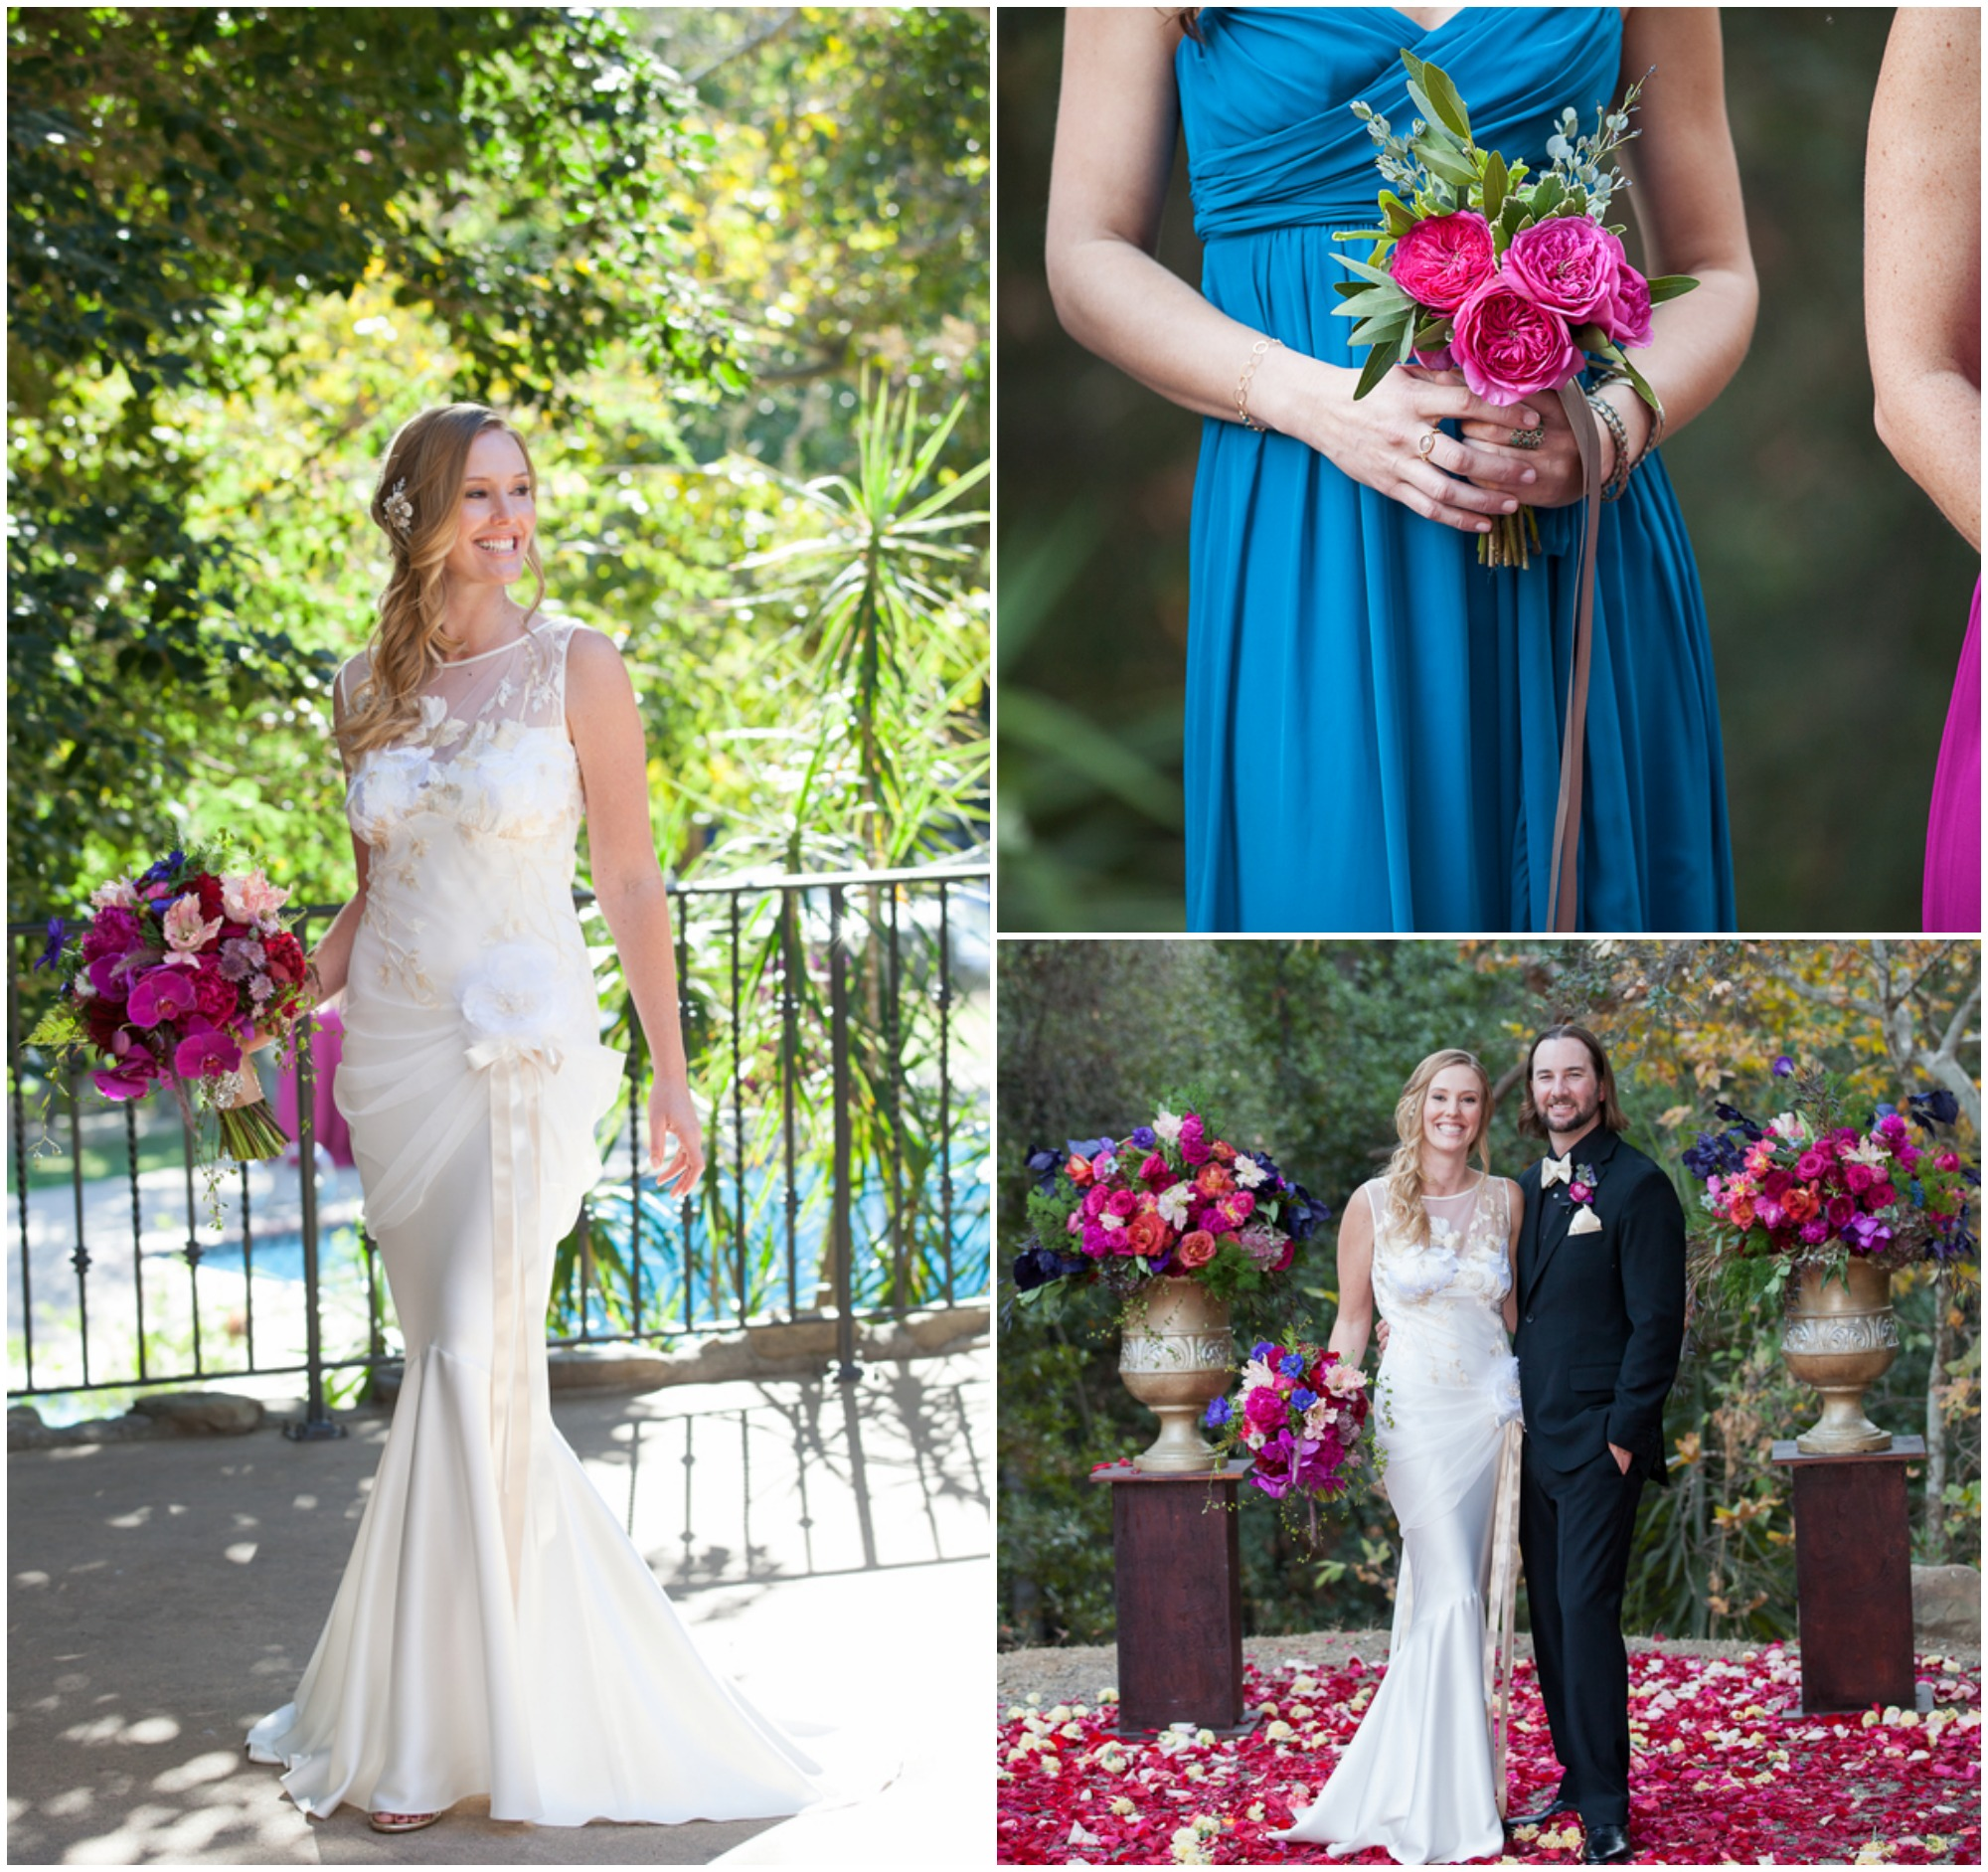 Wedding Colors: California Ranch Wedding With Rich Colors- Rustic Wedding Chic